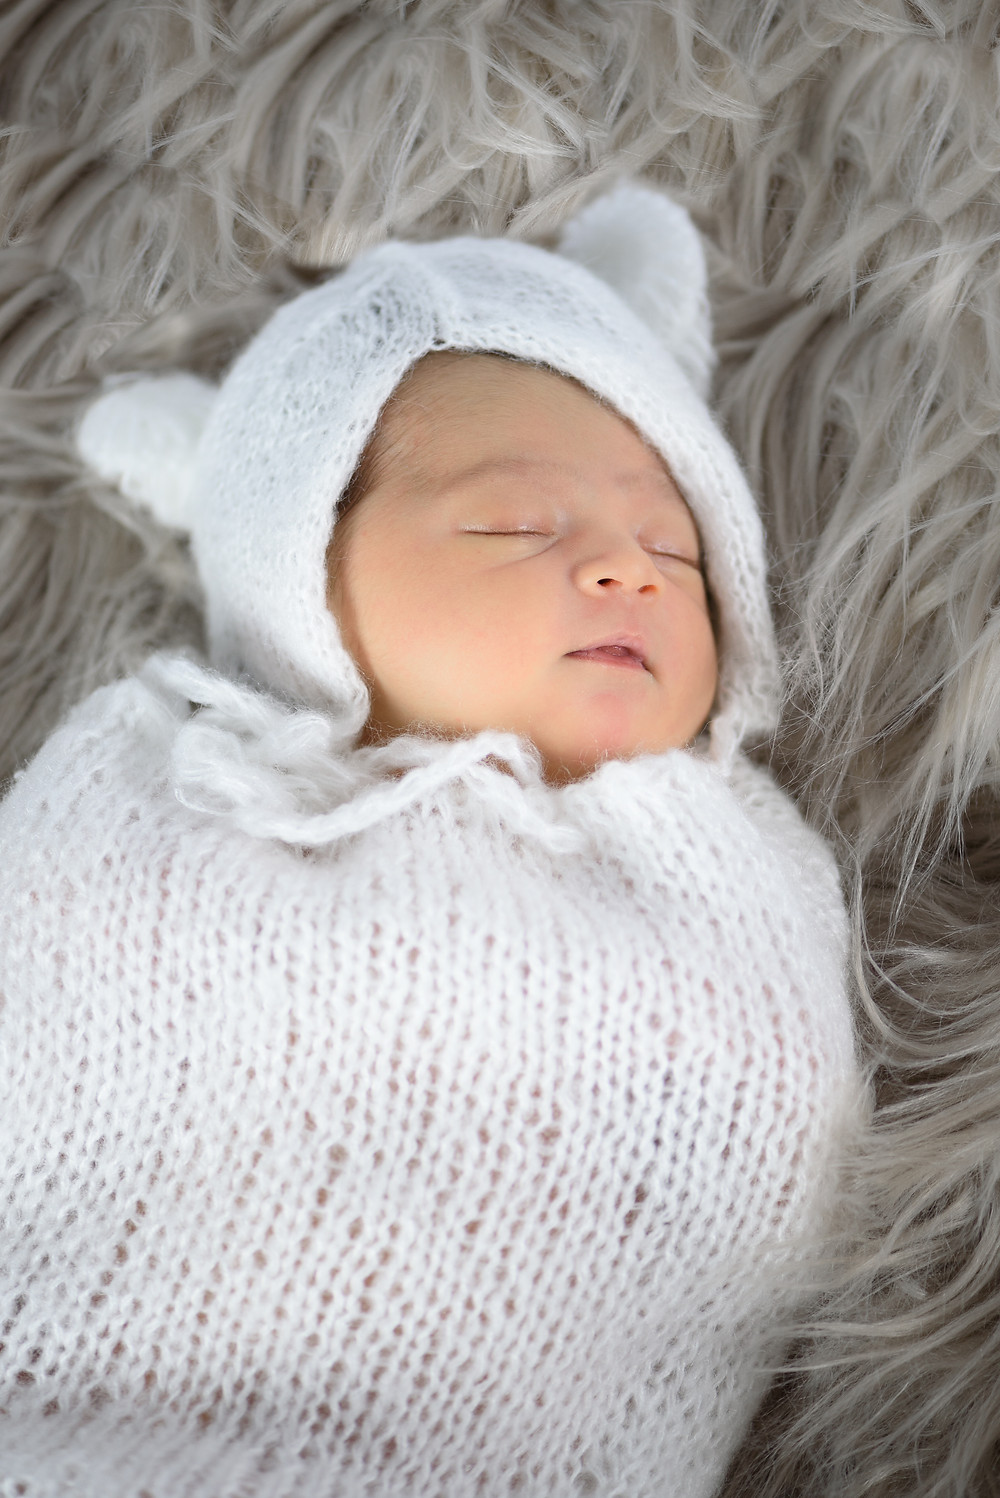 Newborn girl posed on a fur blanket sleeping. She is wearing a knit teddy bear outfit.